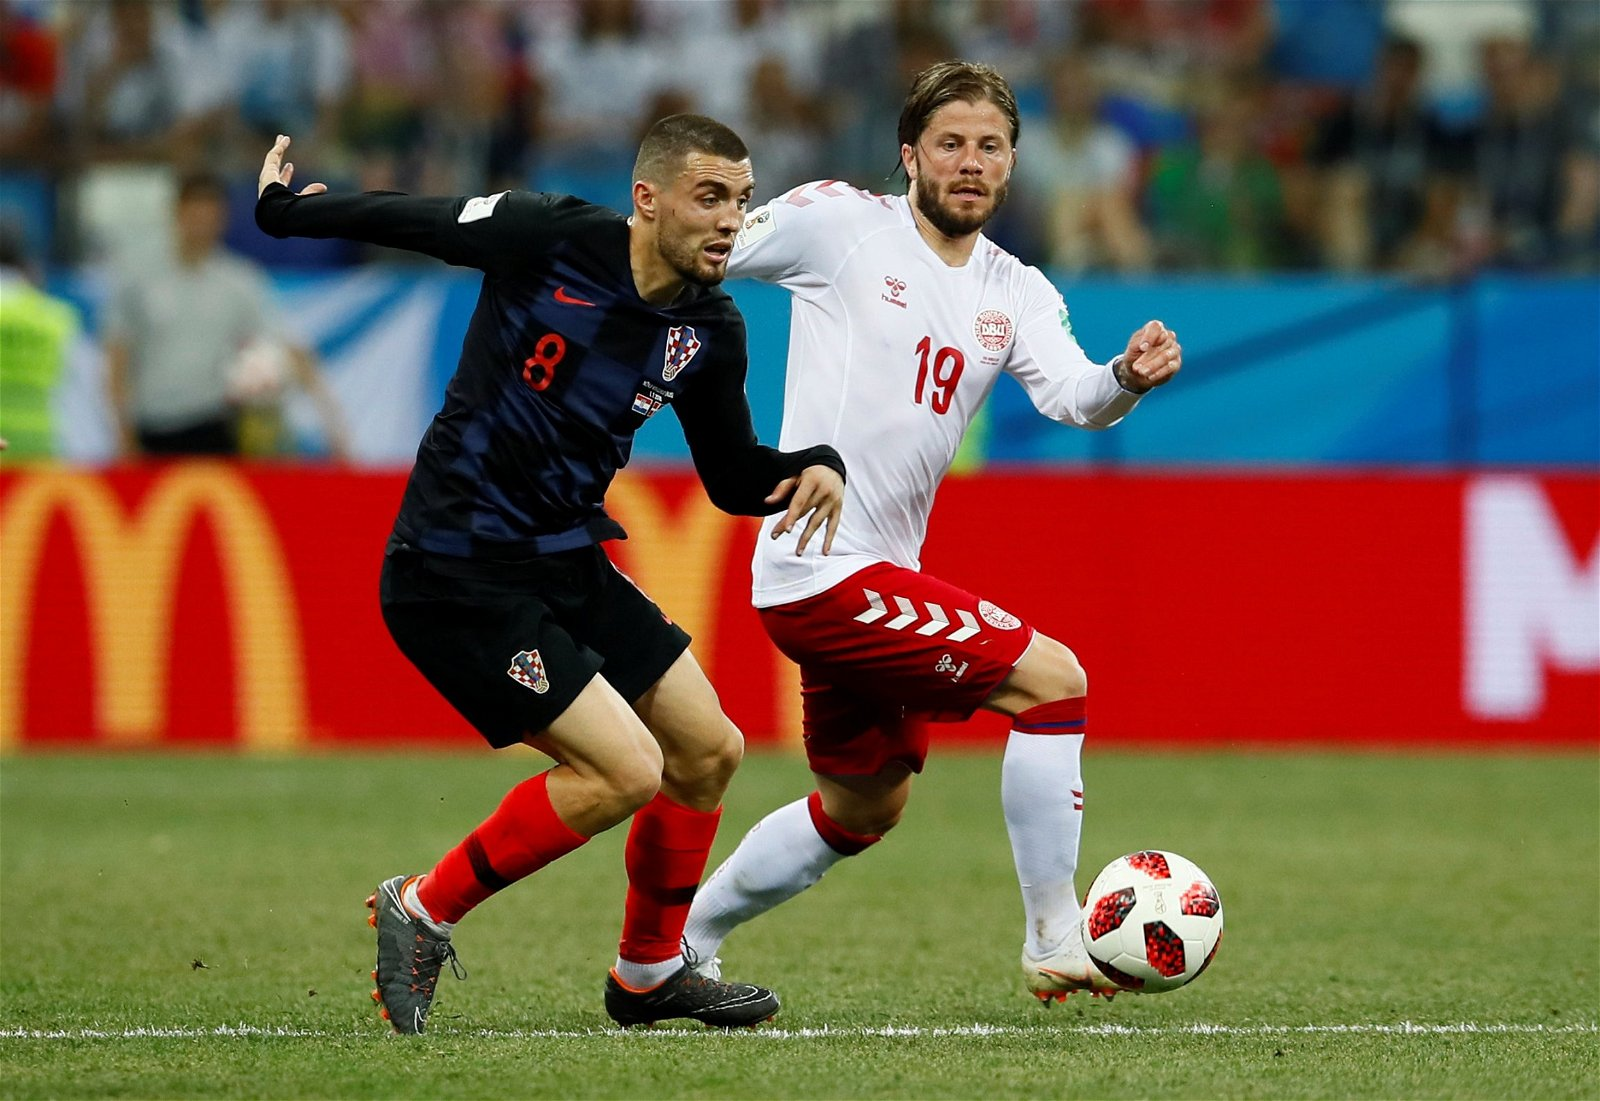 Mateo Kovacic in action against Denmark